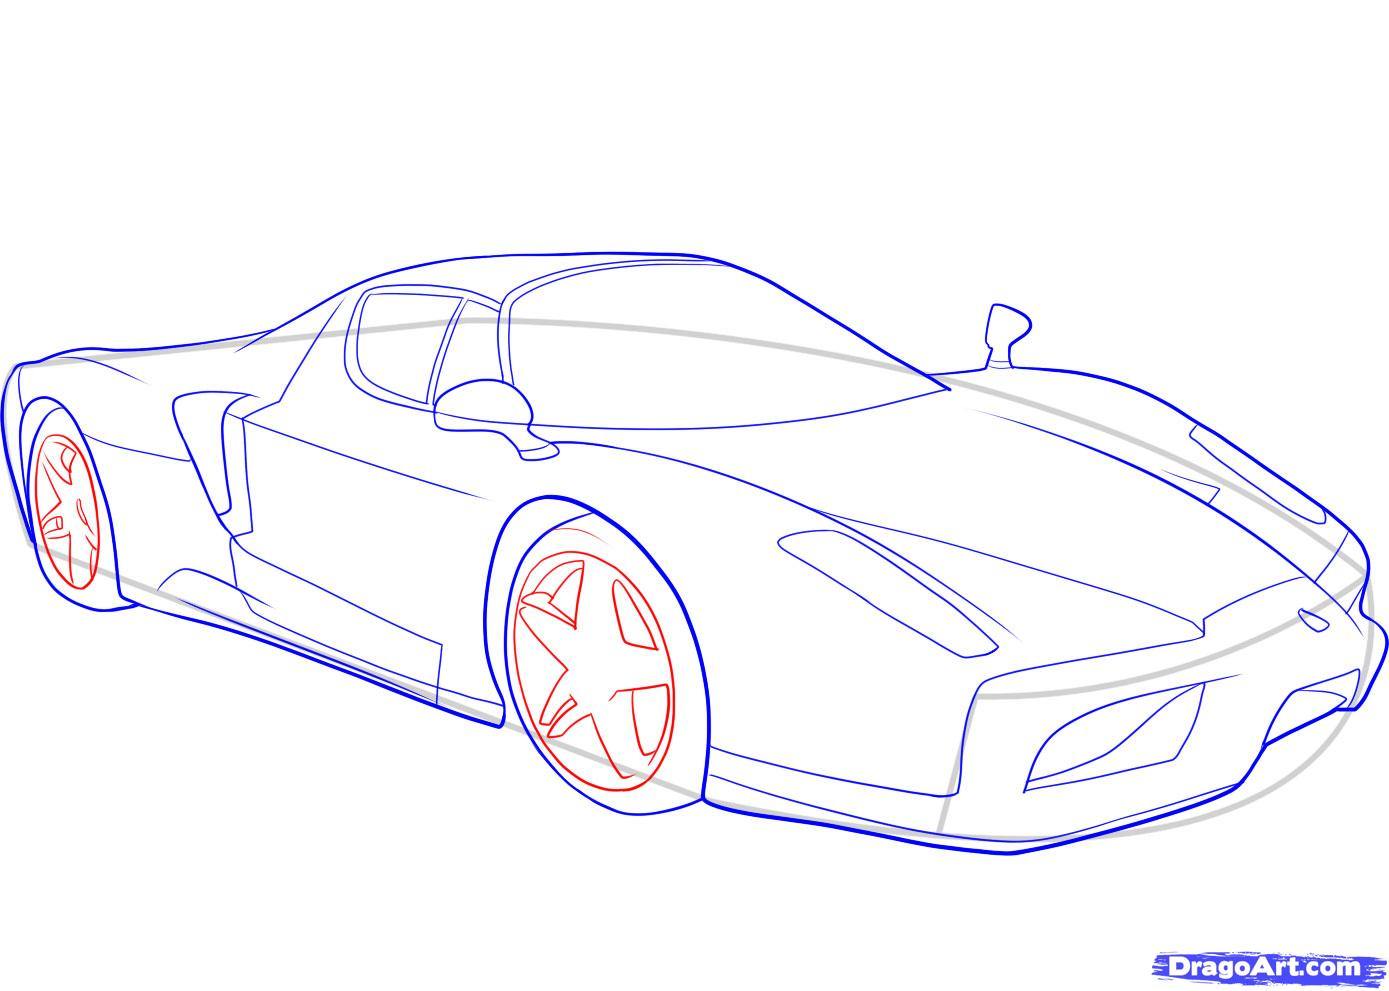 Cars Step By Step Drawing at GetDrawings.com | Free for personal use ...